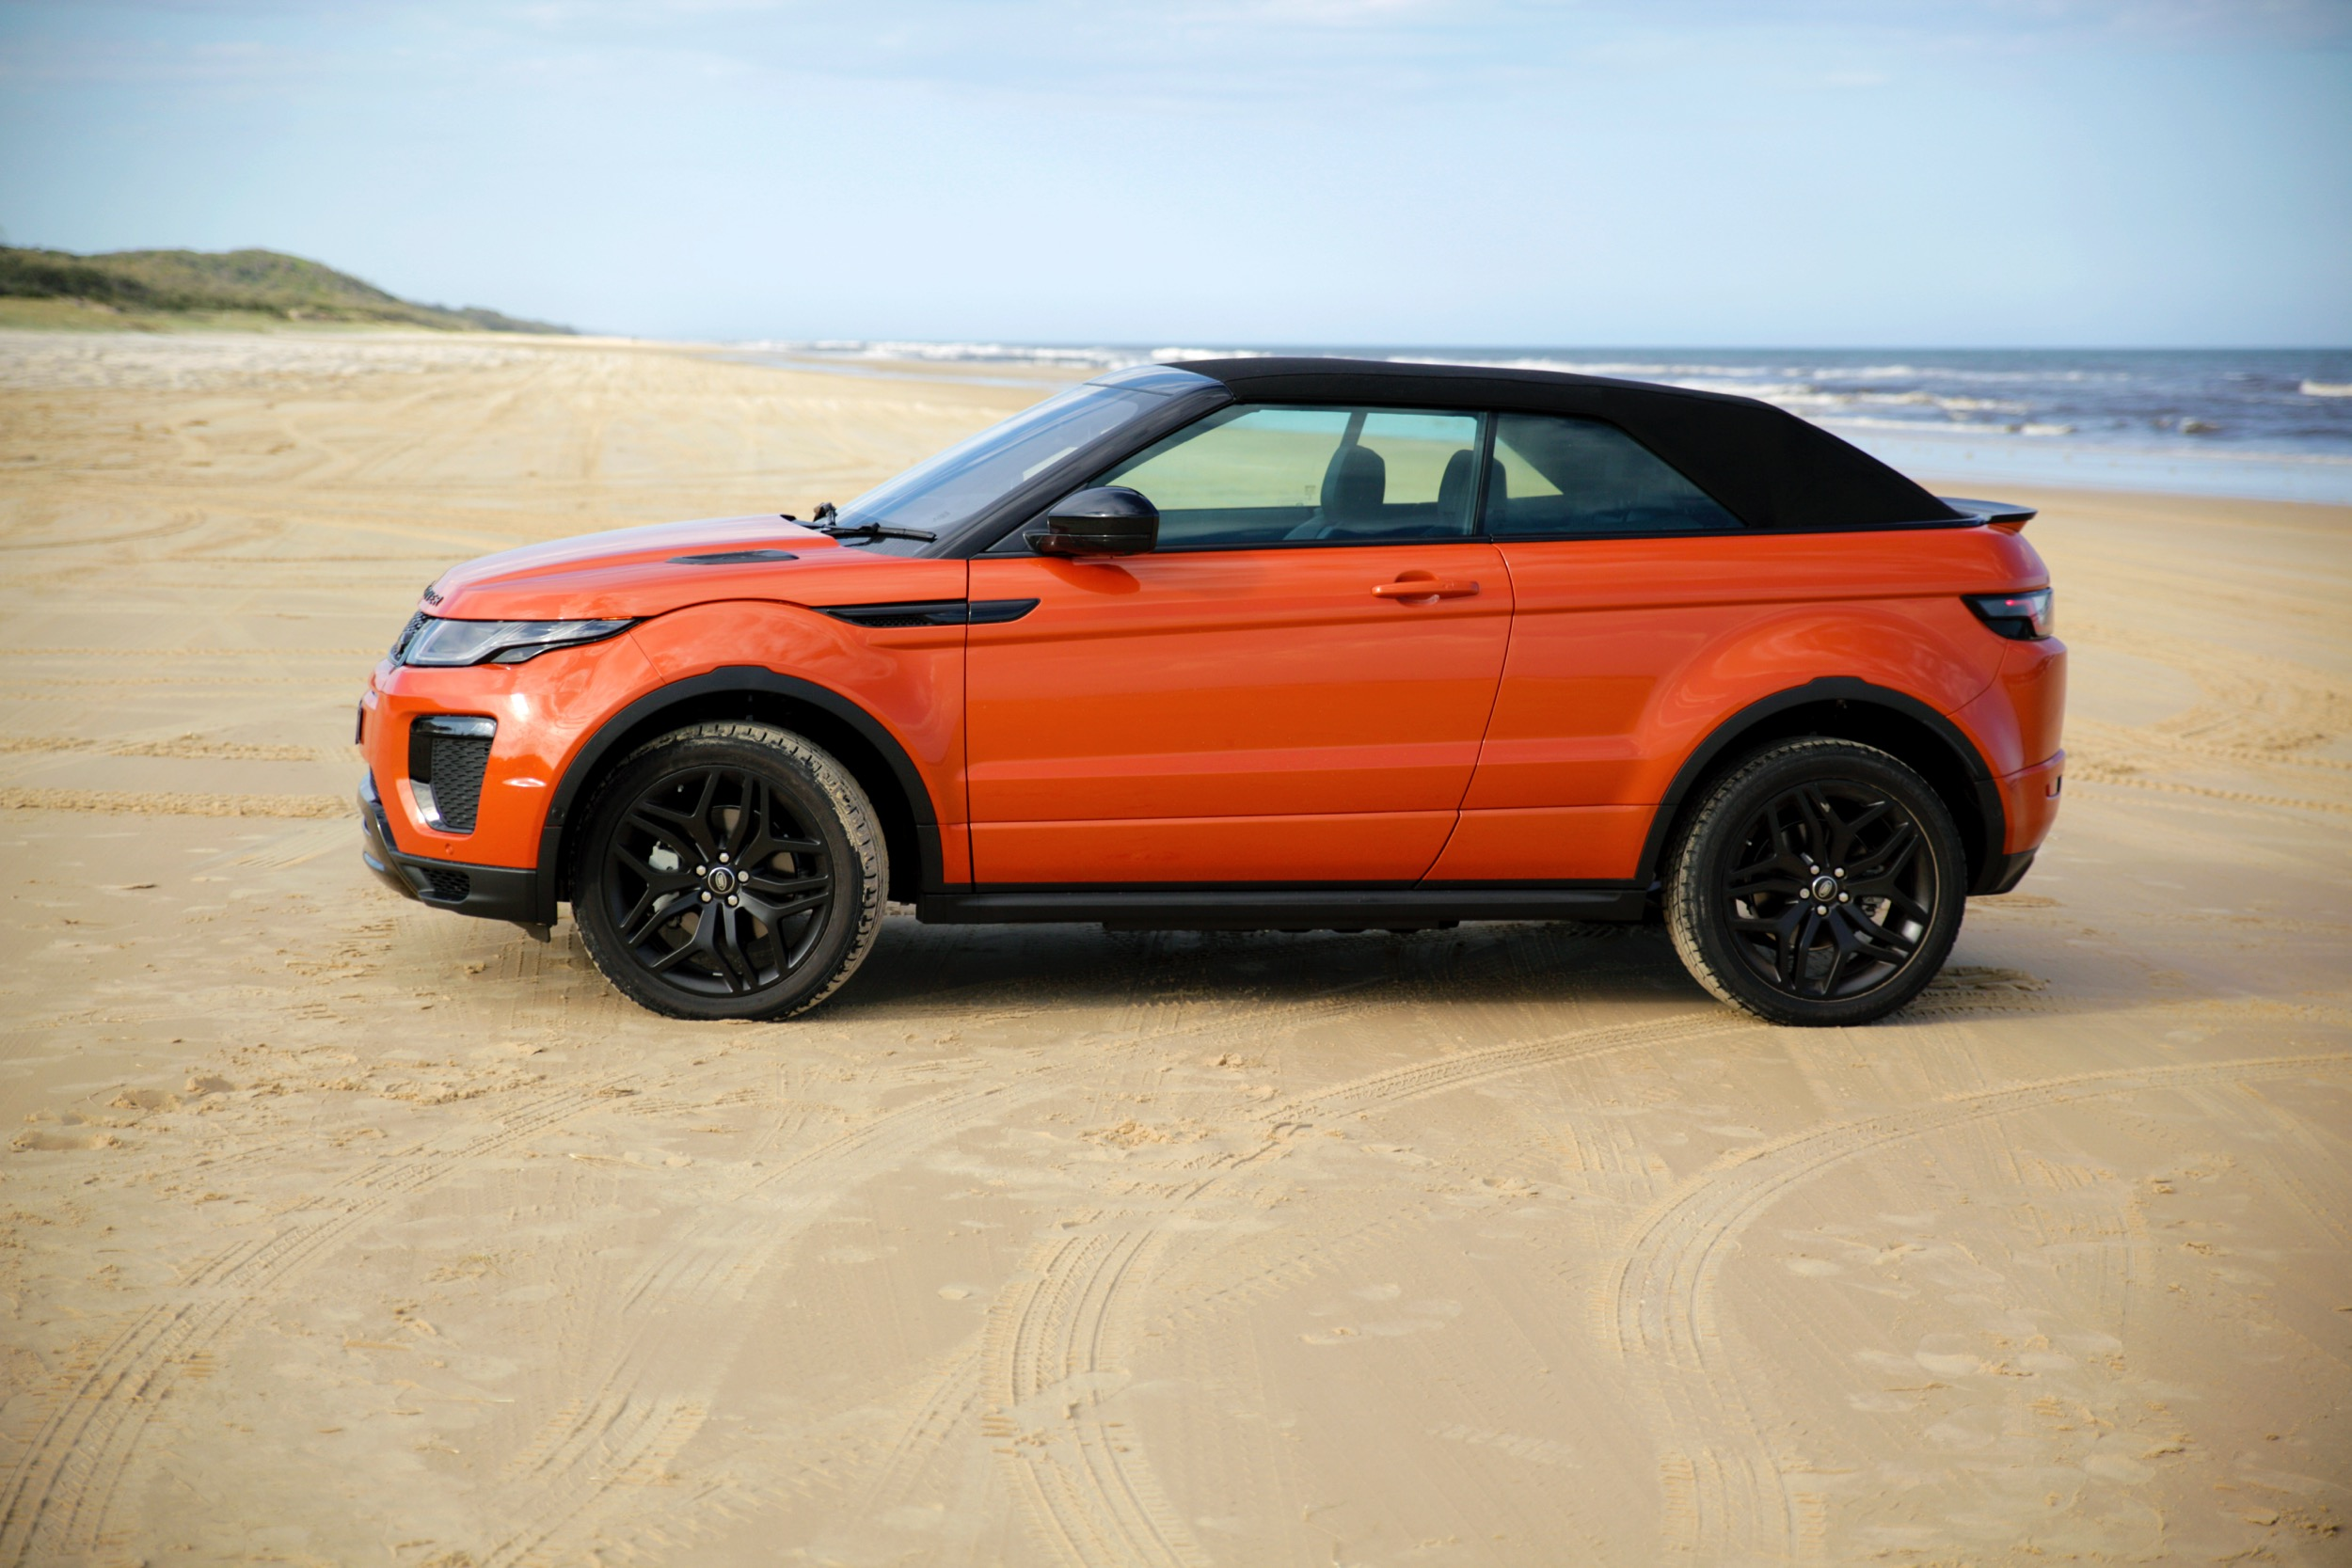 New Range Rover >> 2017 Range Rover Evoque Convertible review | CarAdvice